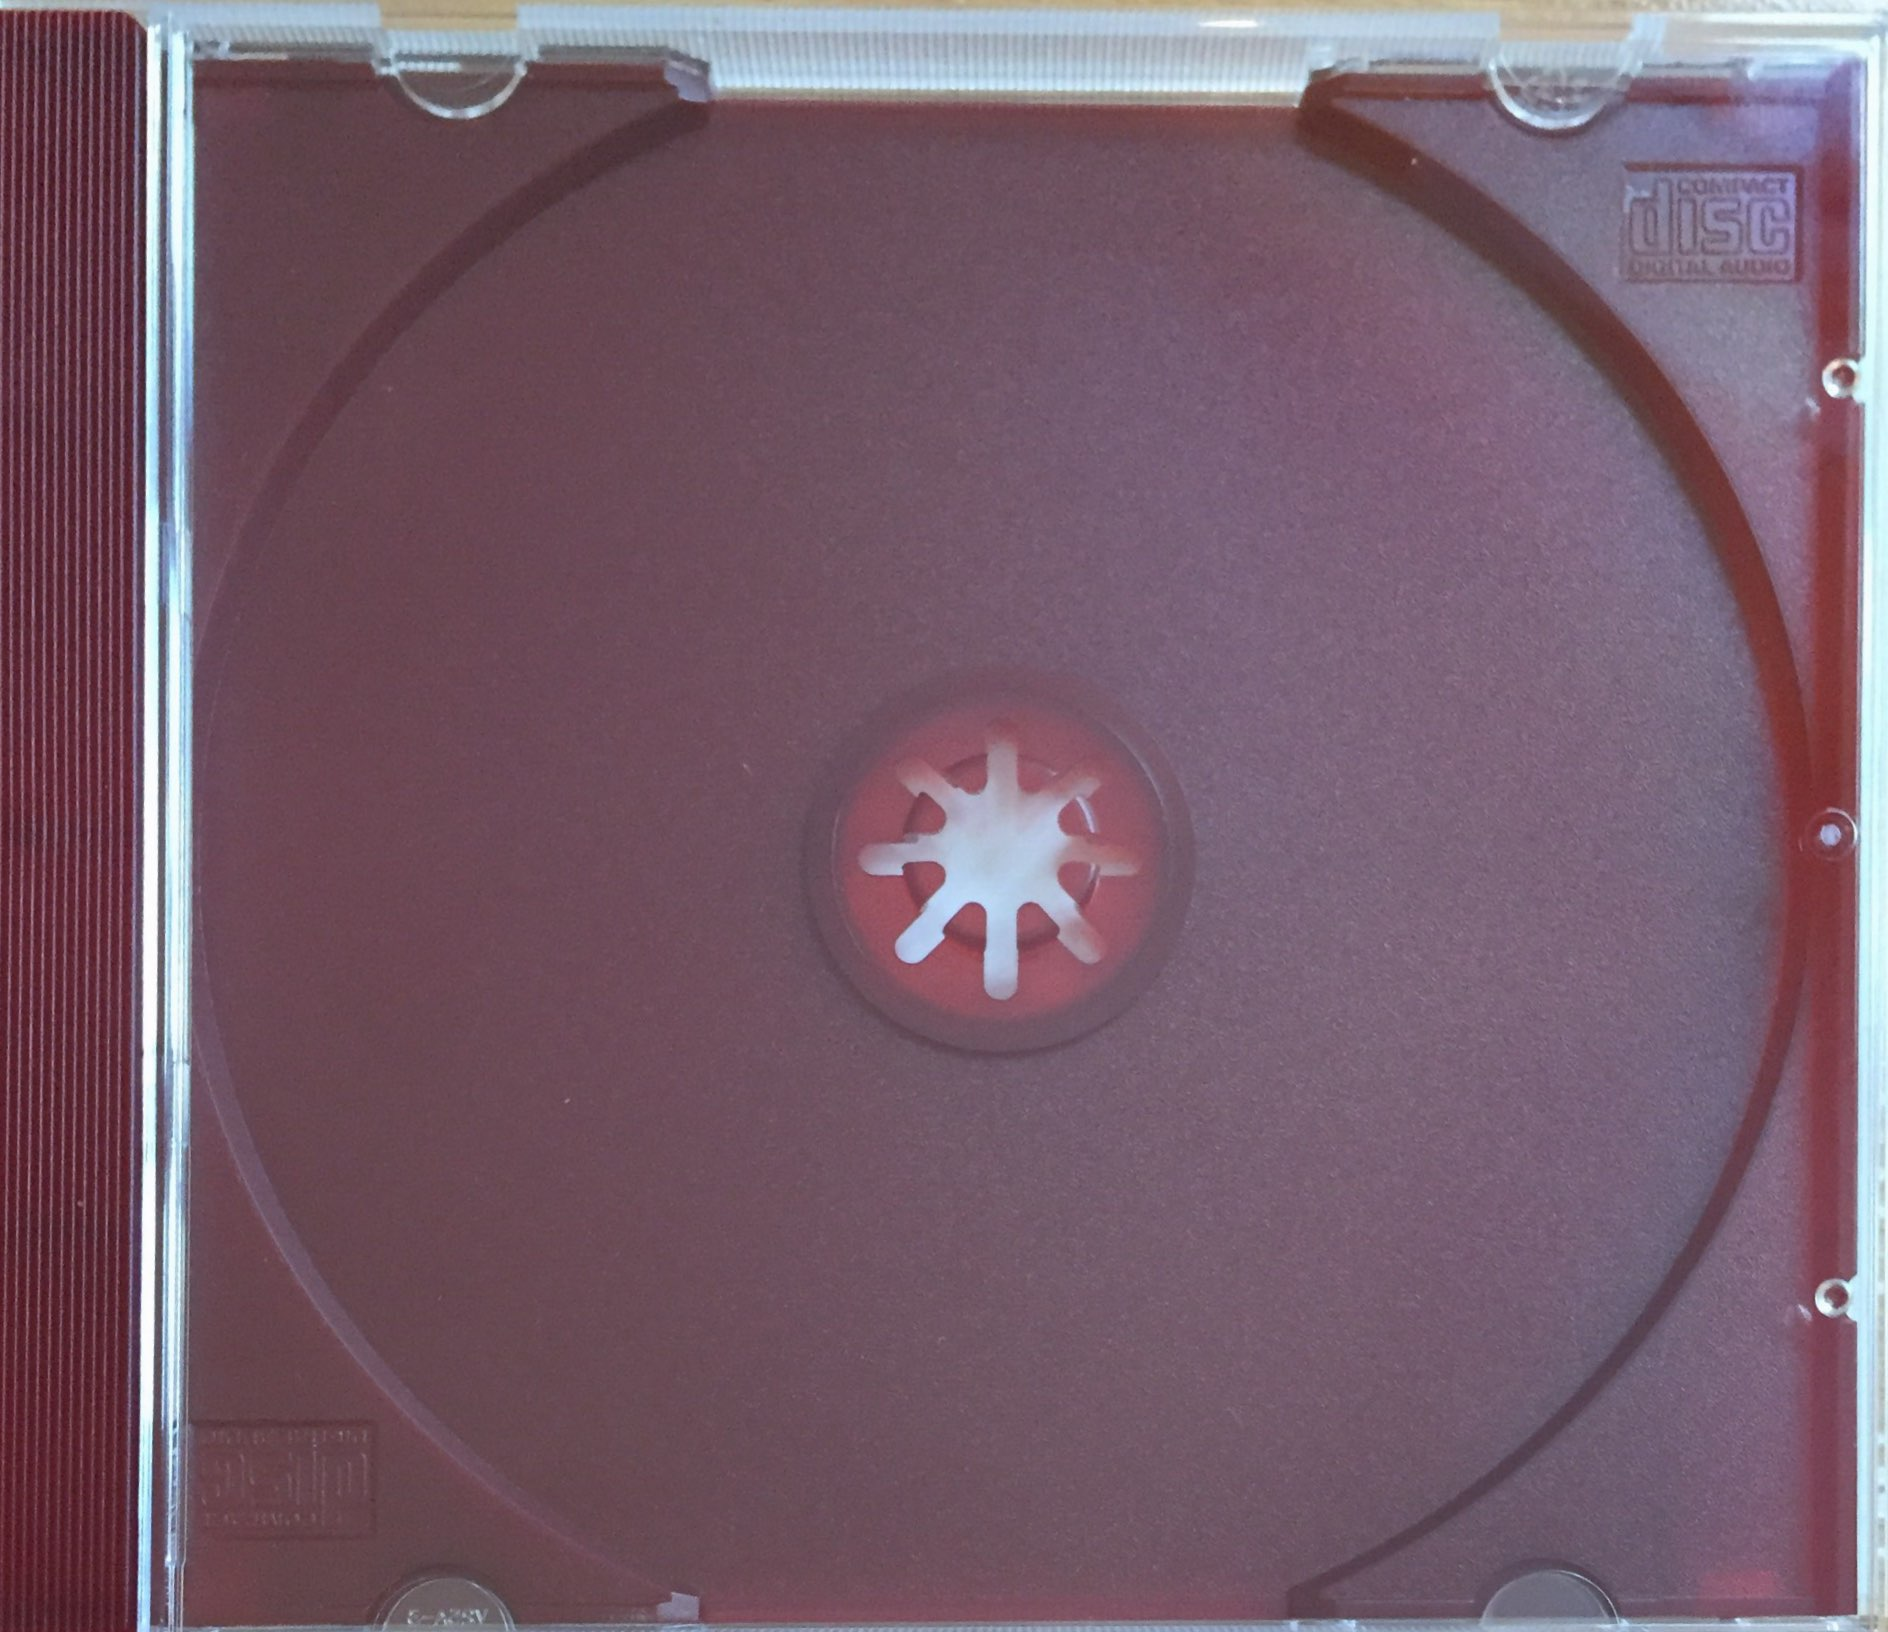 CD Jewel Case cellophane Wraps Overwrapping Sleeves, Opti-pack.co.uk